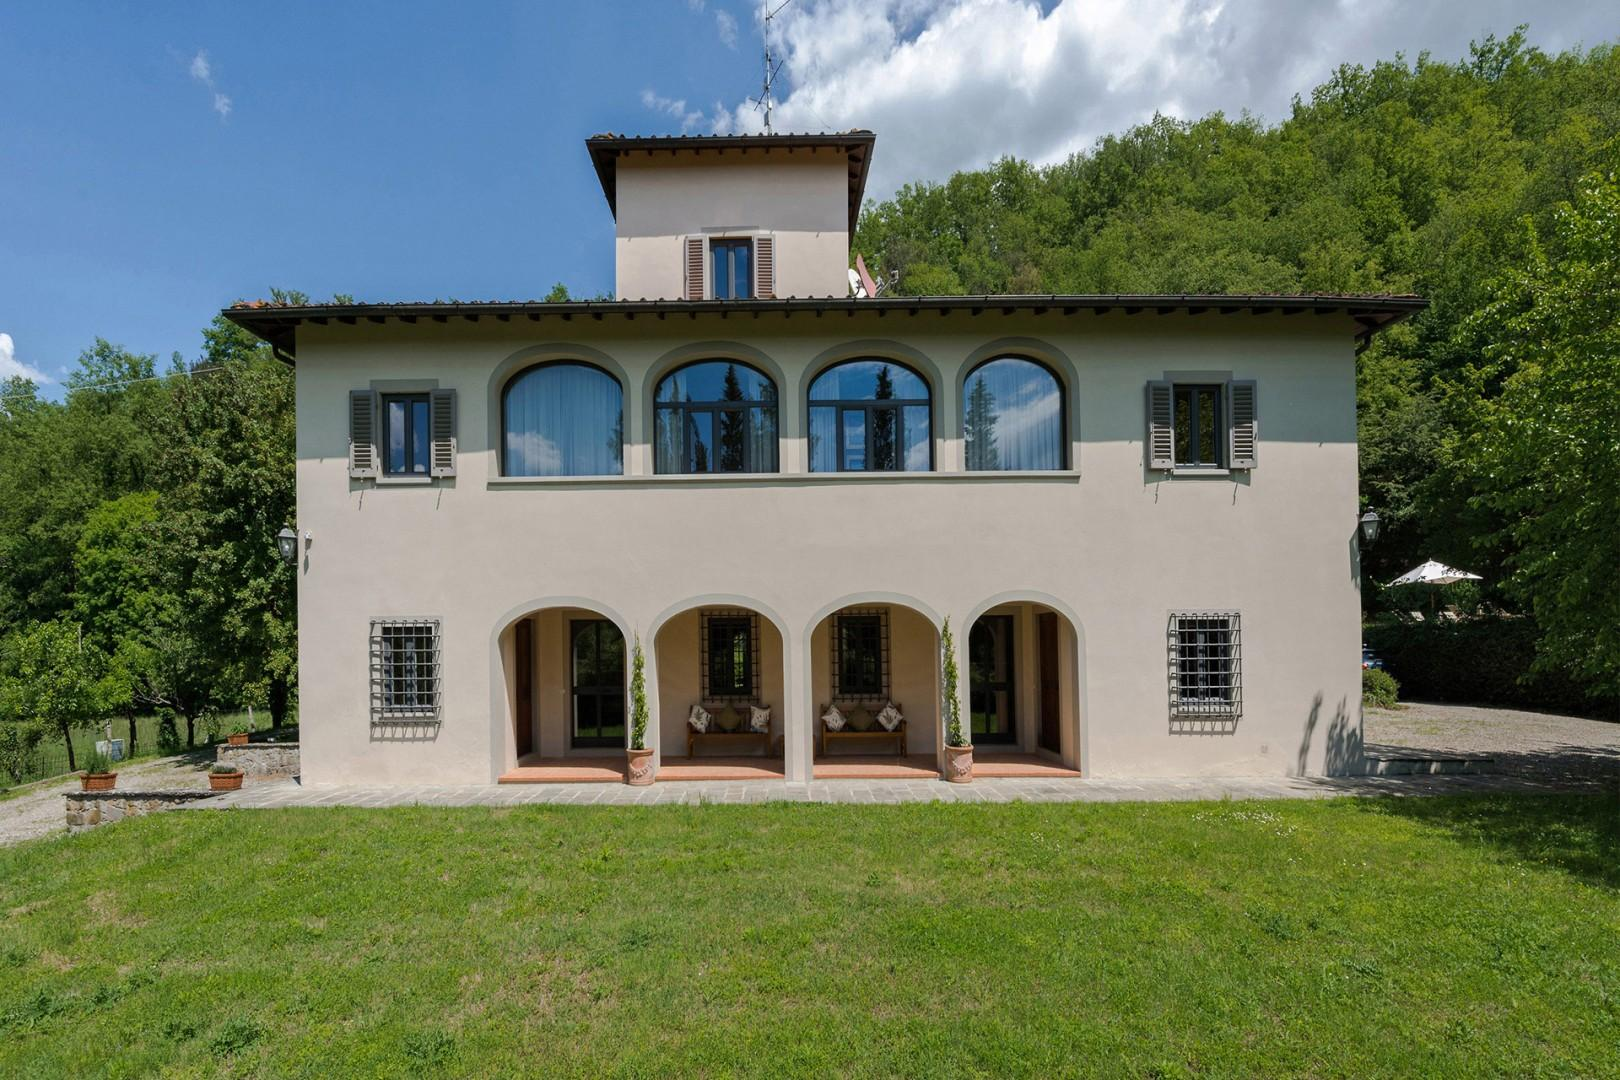 Villa Felice has been carefully restored to take advantage of the privacy and views.